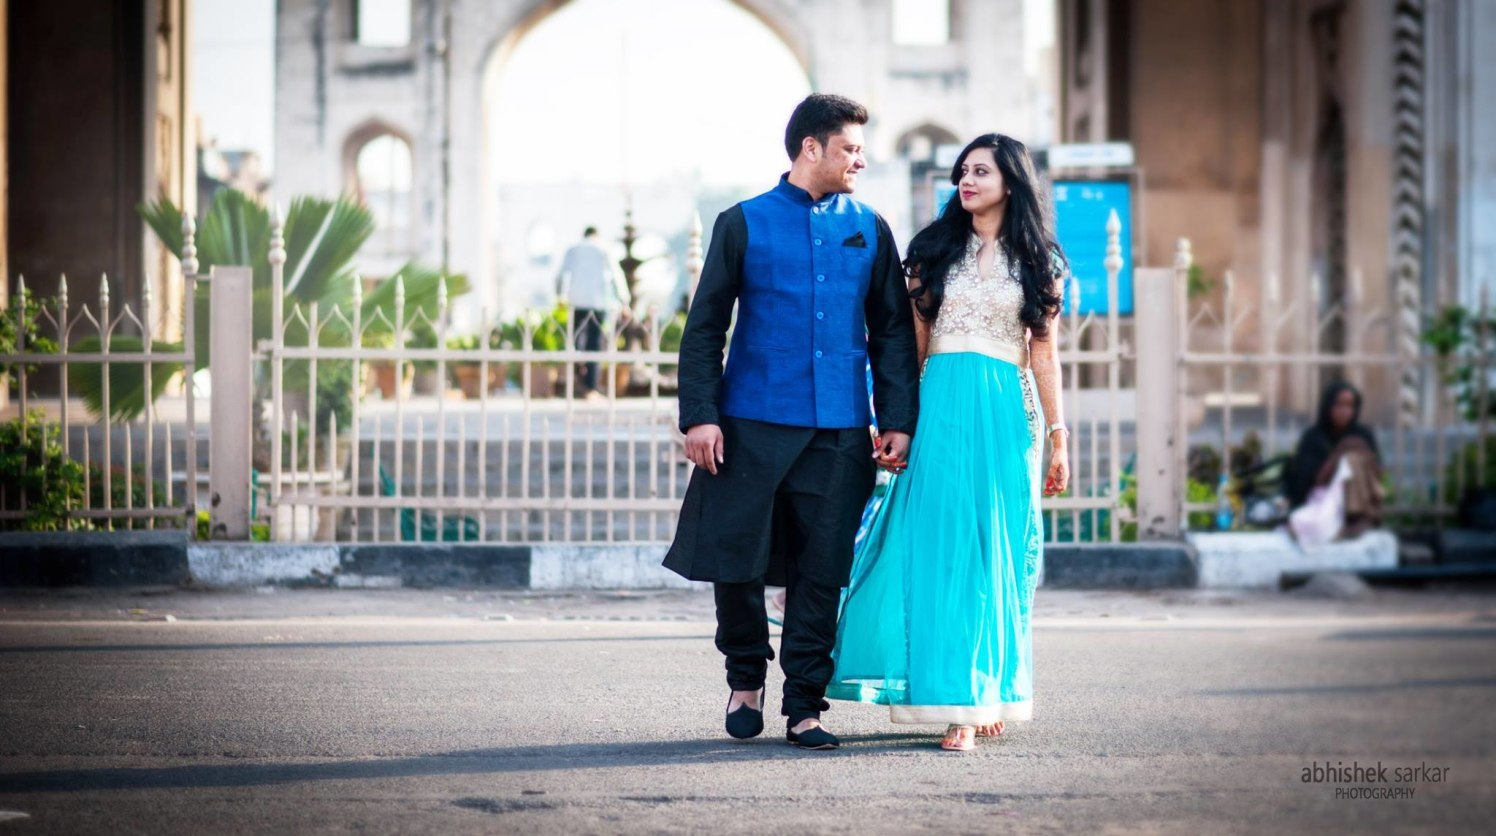 Walk beside me! by Abhishek Sarkar Wedding-photography | Weddings Photos & Ideas